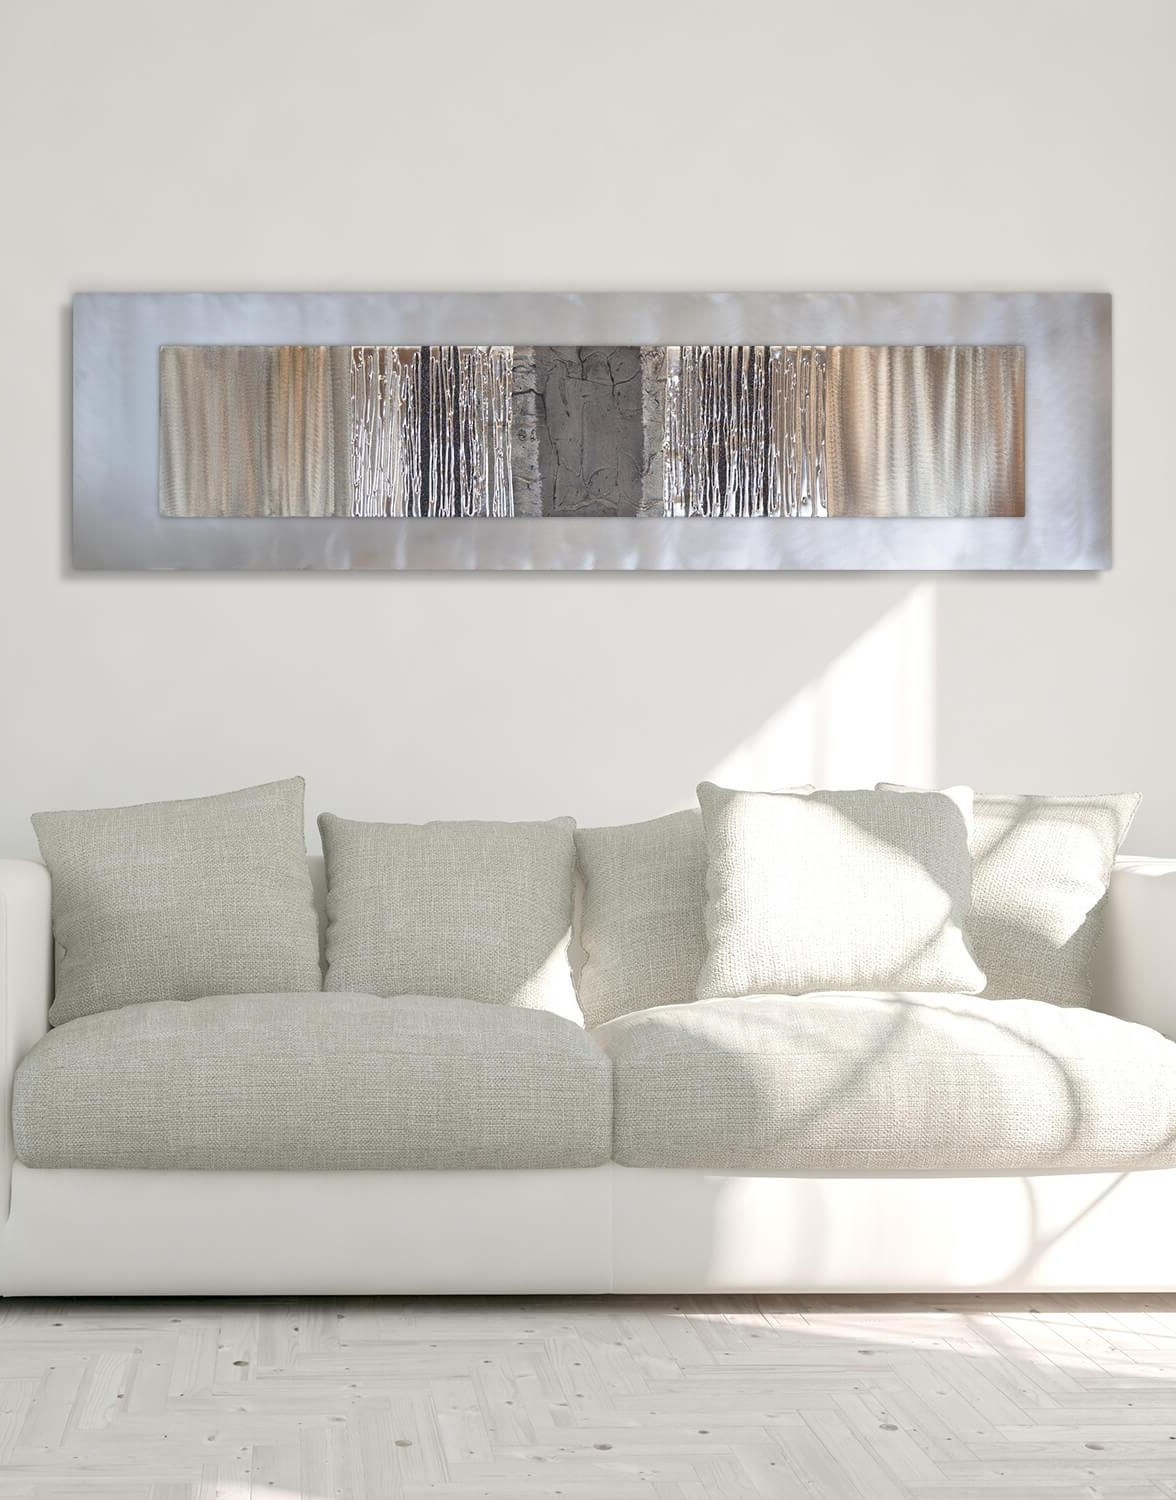 Well Liked Endearing Image Silver Wall Art Silver Wall Art Home Design Within Silver Wall Art (View 11 of 15)